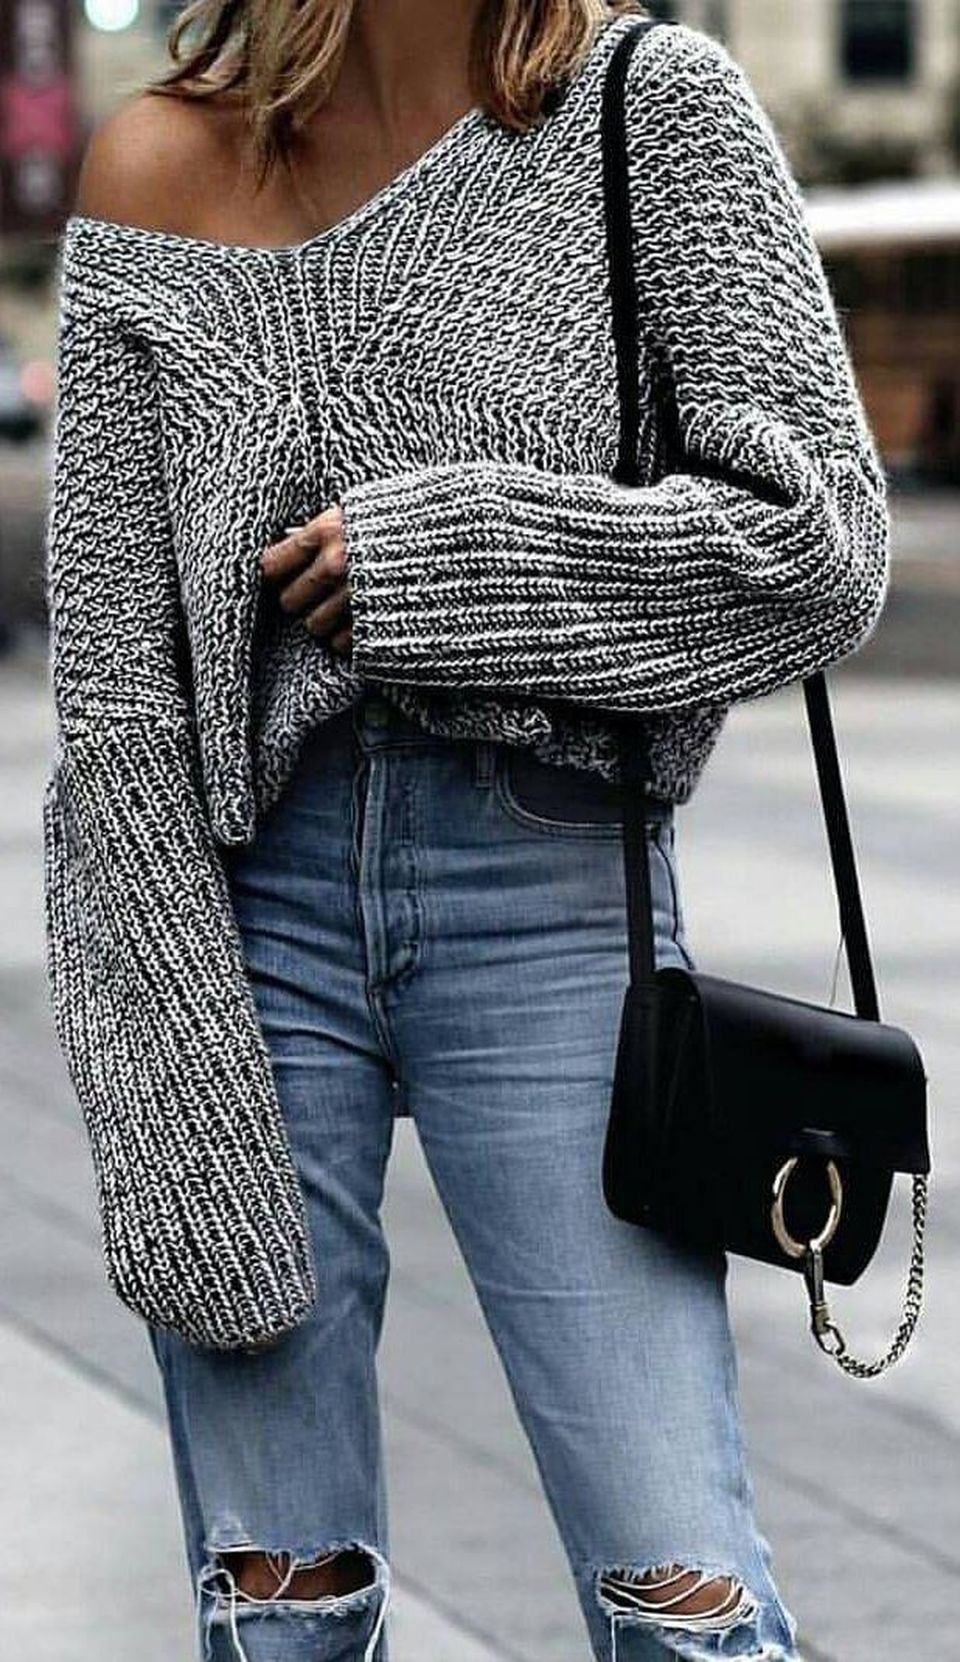 Fashionable oversized sweater for winter outfit 26 , Fashion